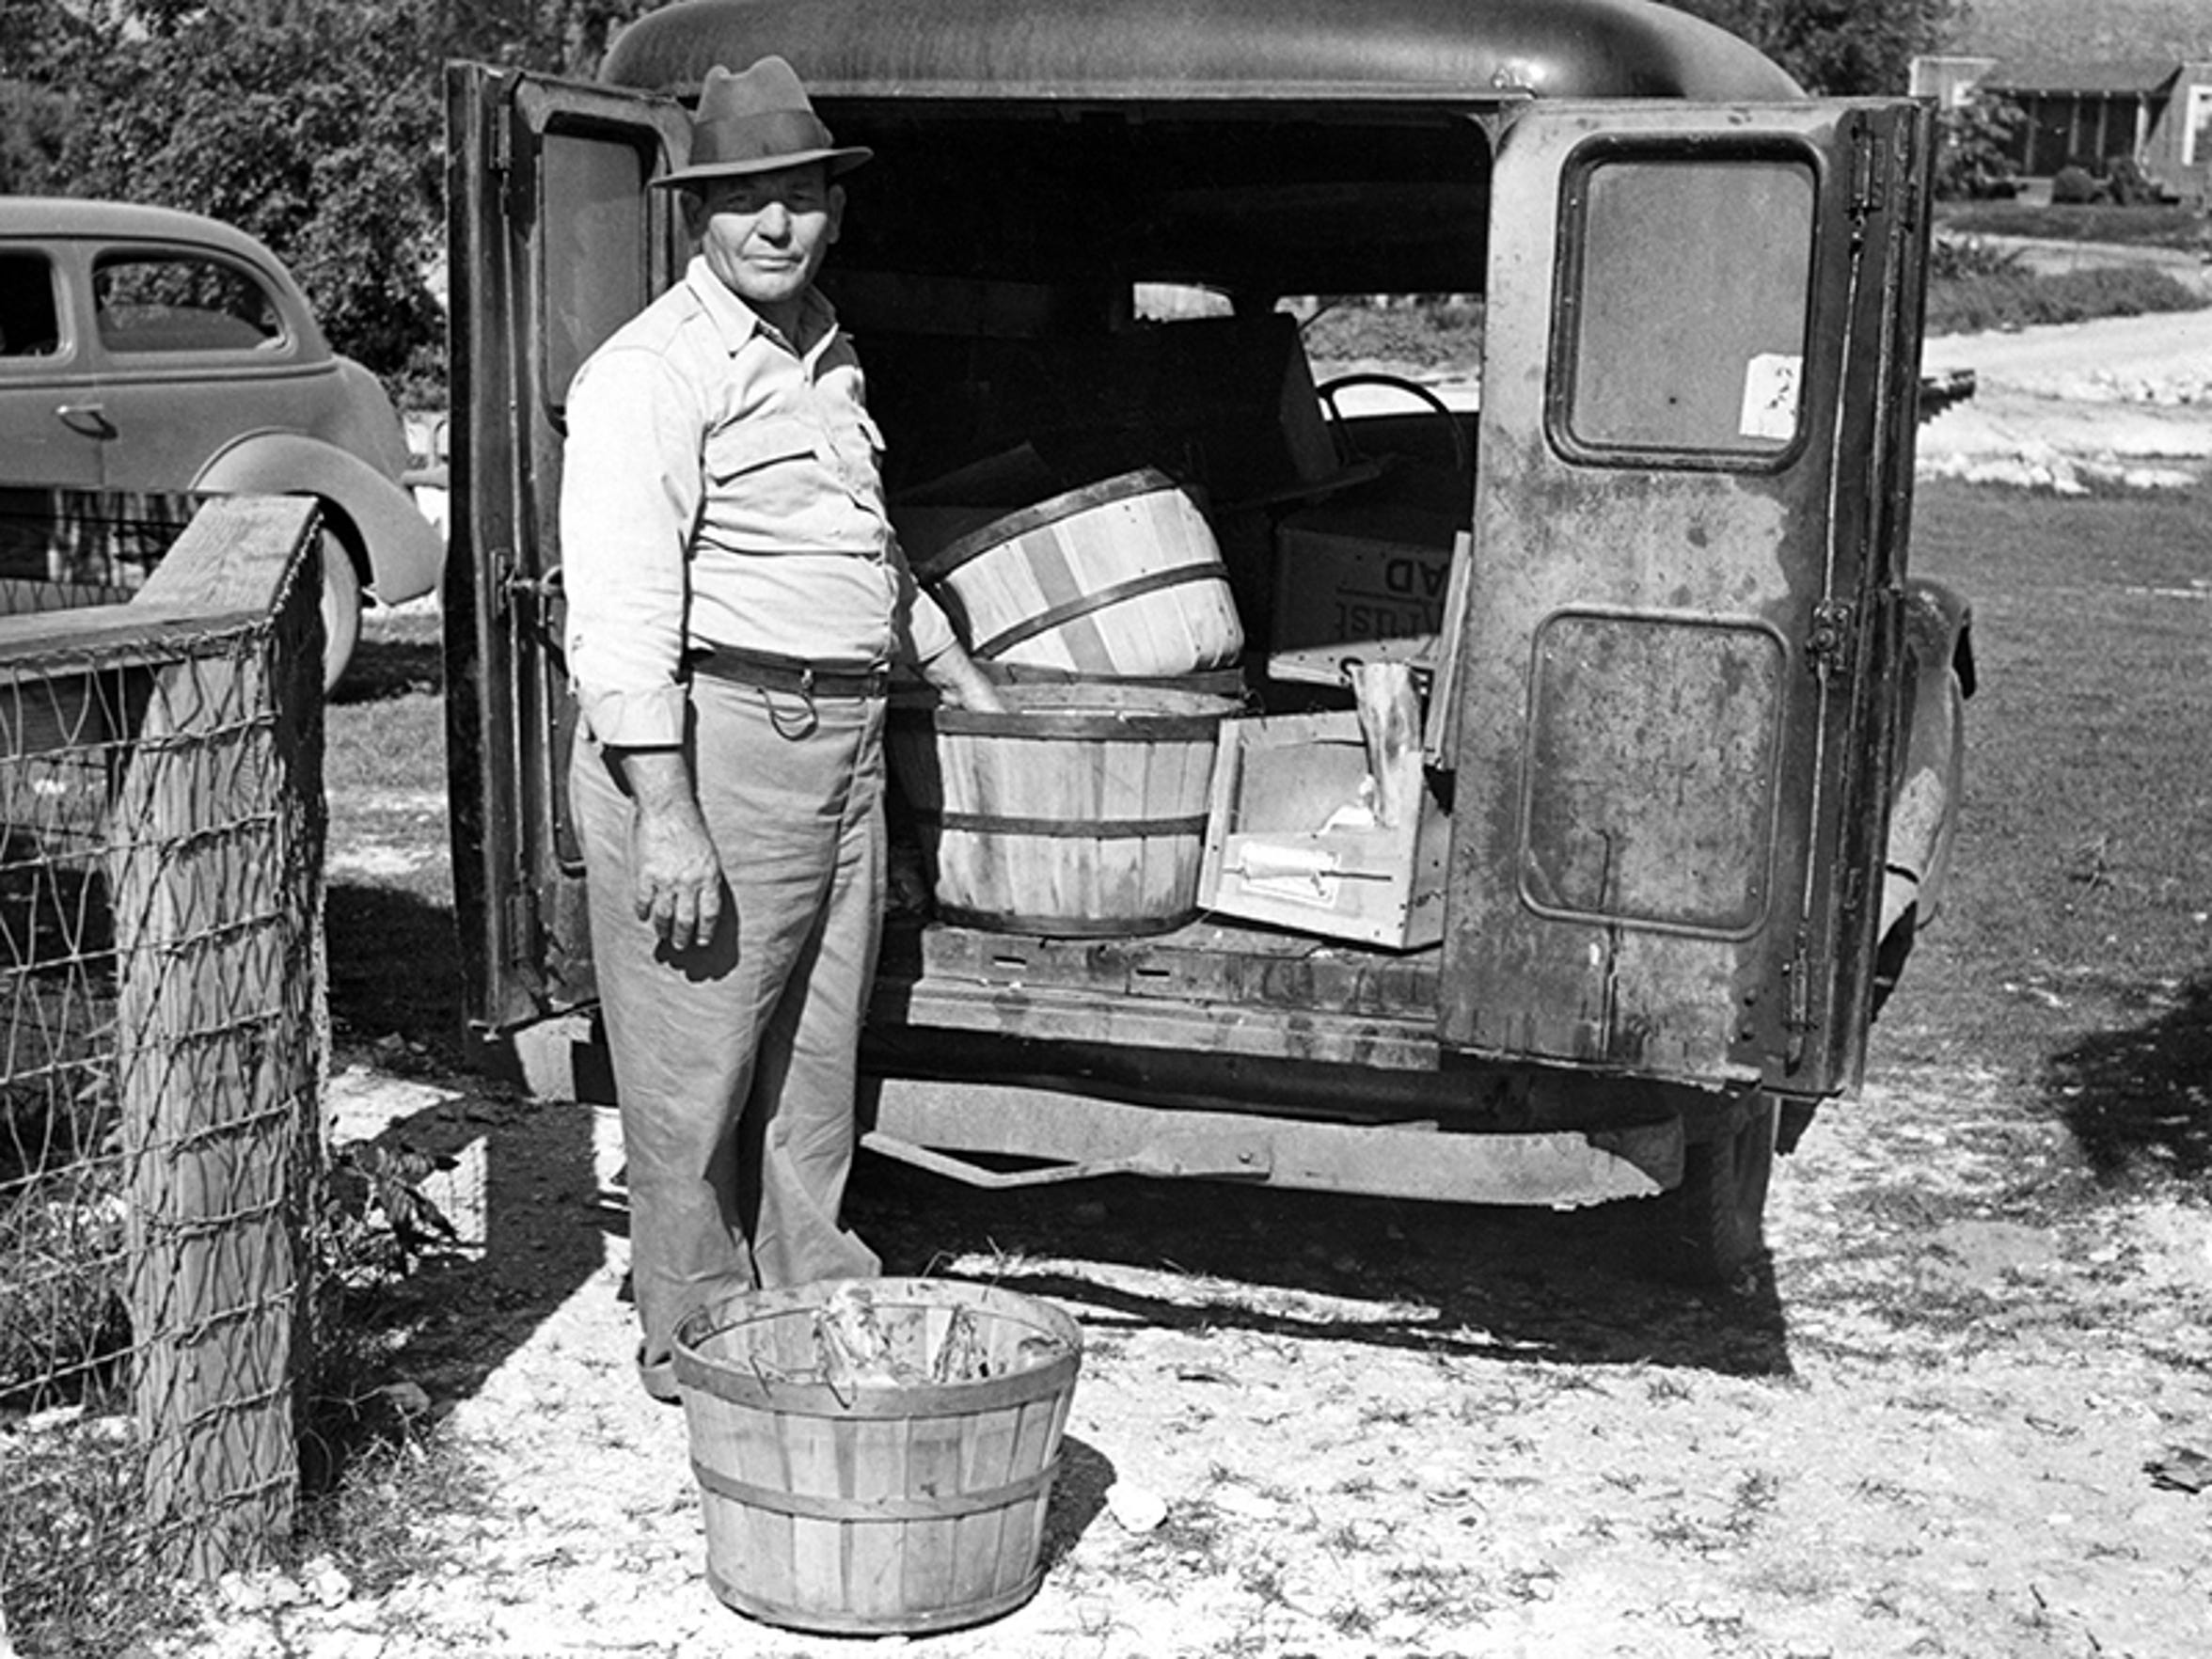 """Ricardo """"Dick"""" Flores was the zookeeper for Corpus Christi's zoo from 1936 to 1946. He was paid $125 a month. Here he stands with his truck and baskets of food for the animals in September 1938, when the zoo was located in Ben Garza Park. Photo by Doc McGregor, courtesy of the Corpus Christi Museum of Science and History."""